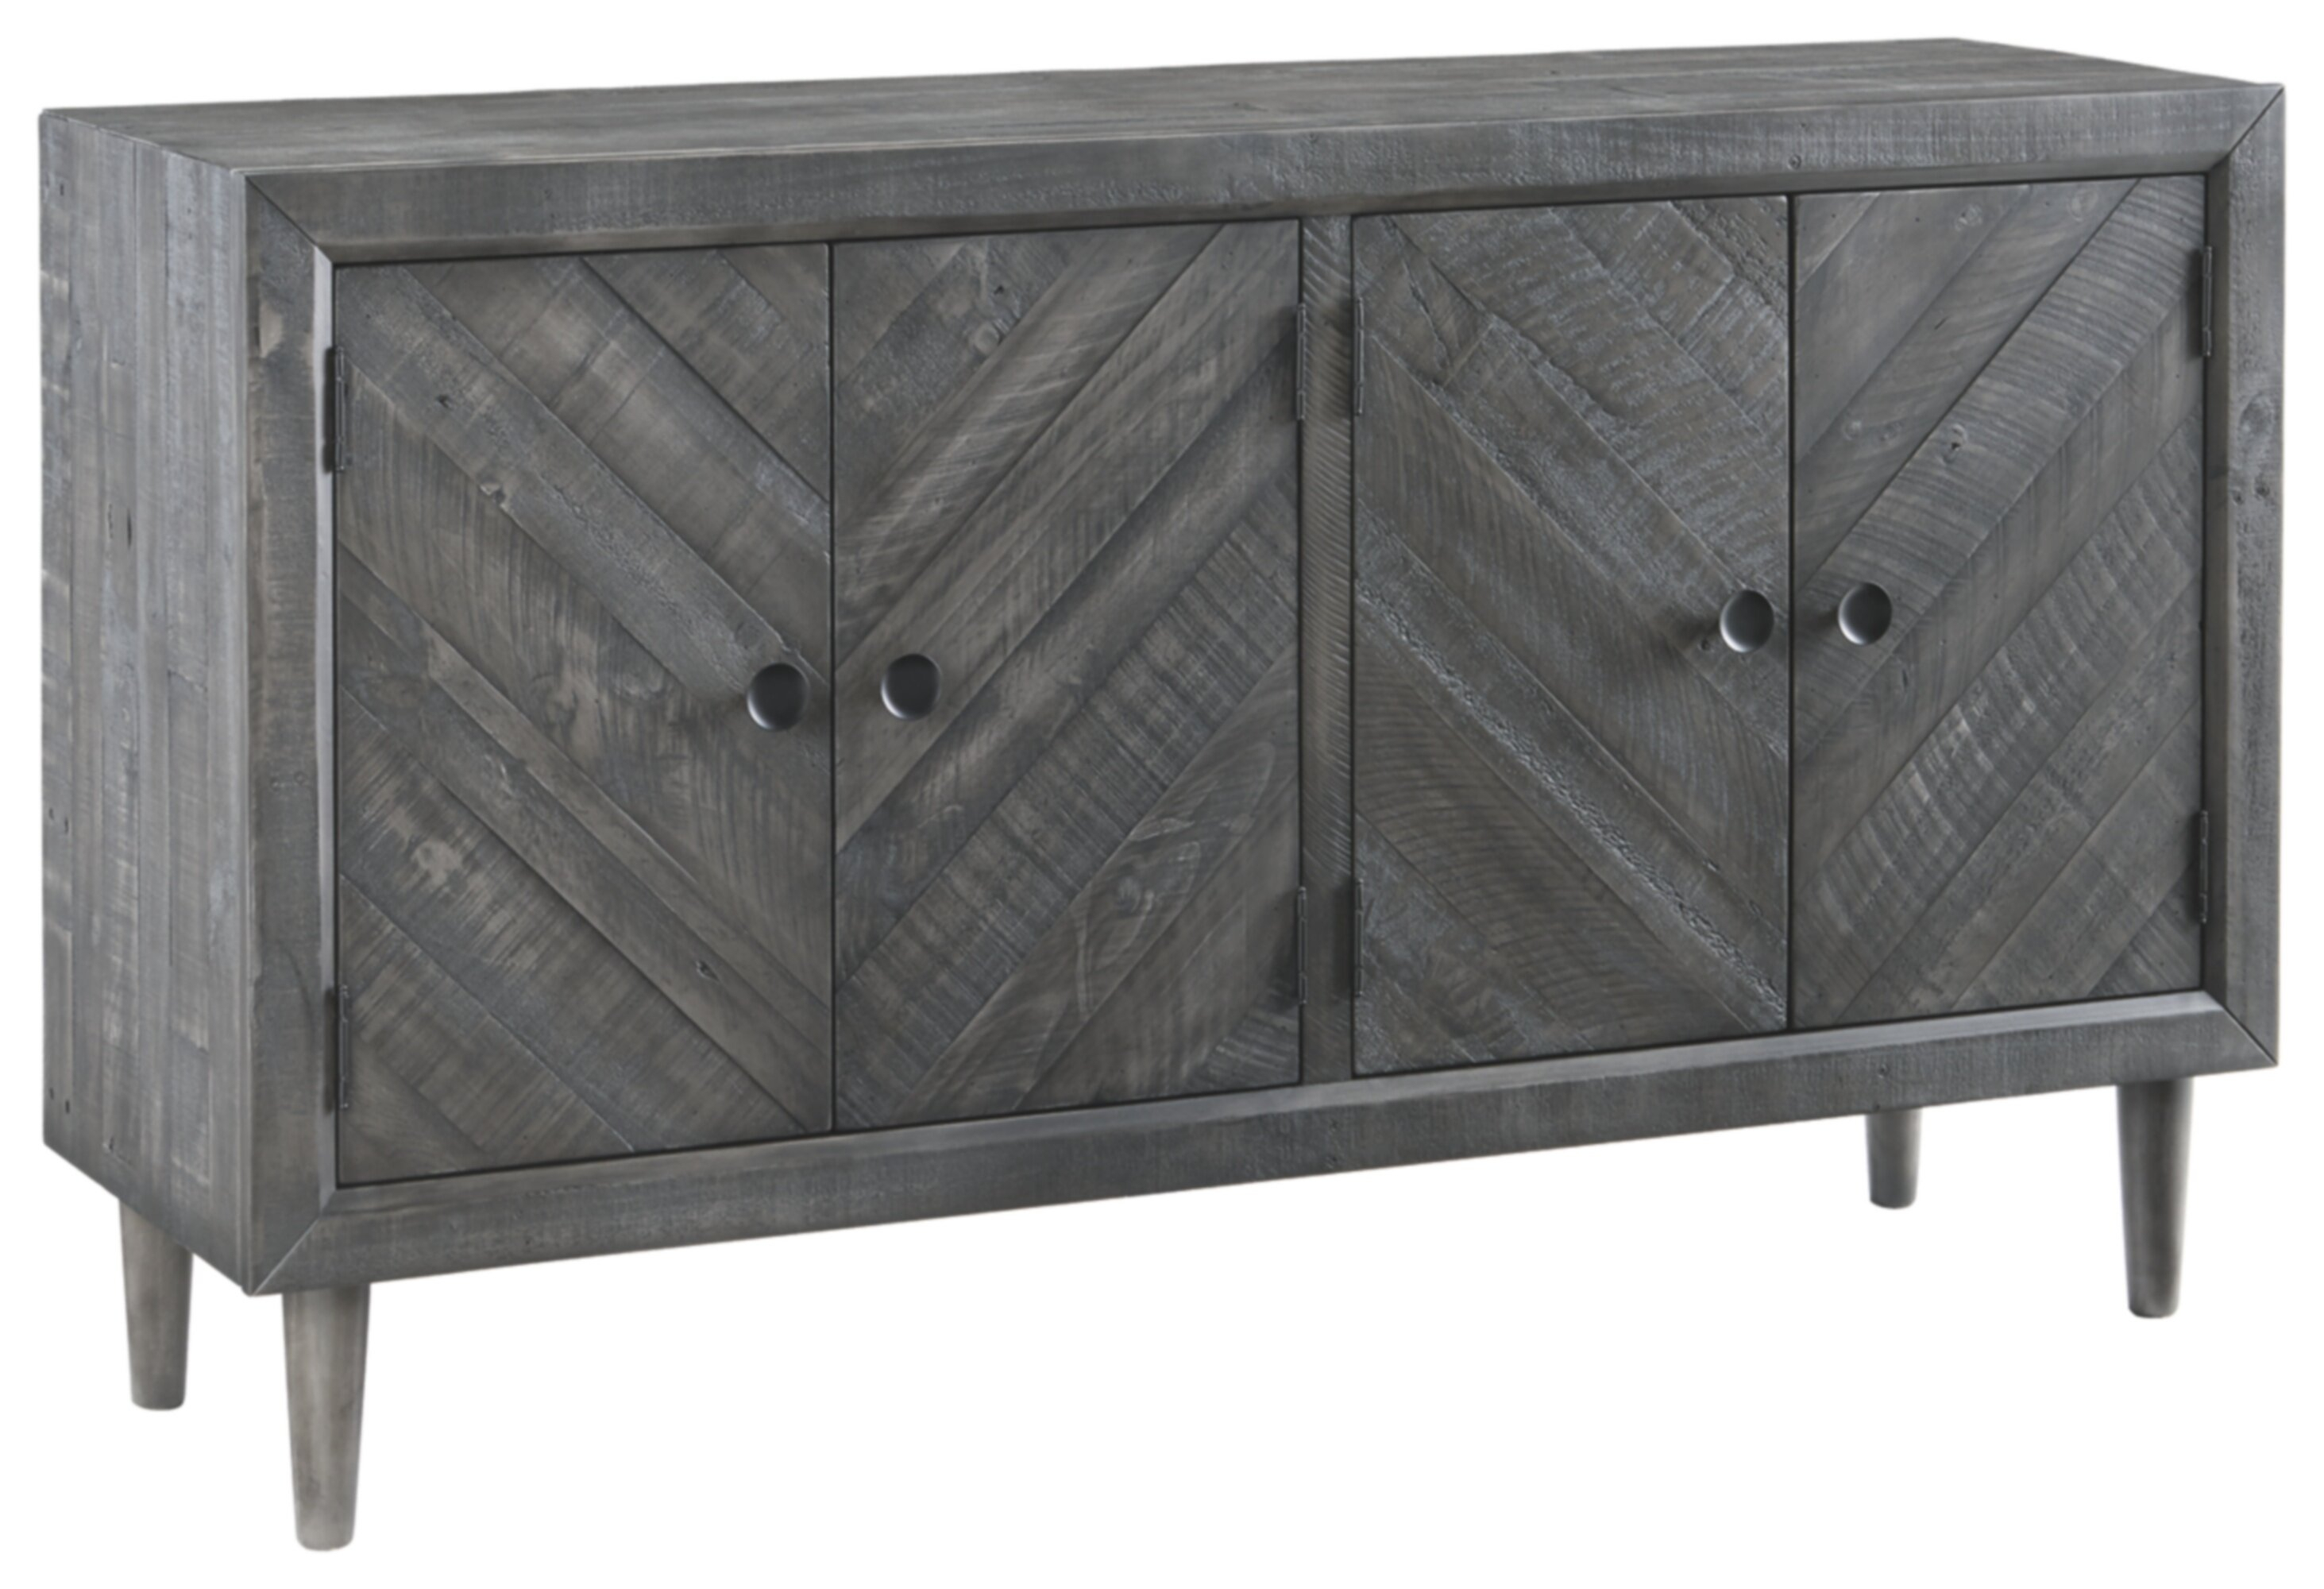 Banach Sideboard Regarding Sideboards By Foundry Select (View 4 of 30)